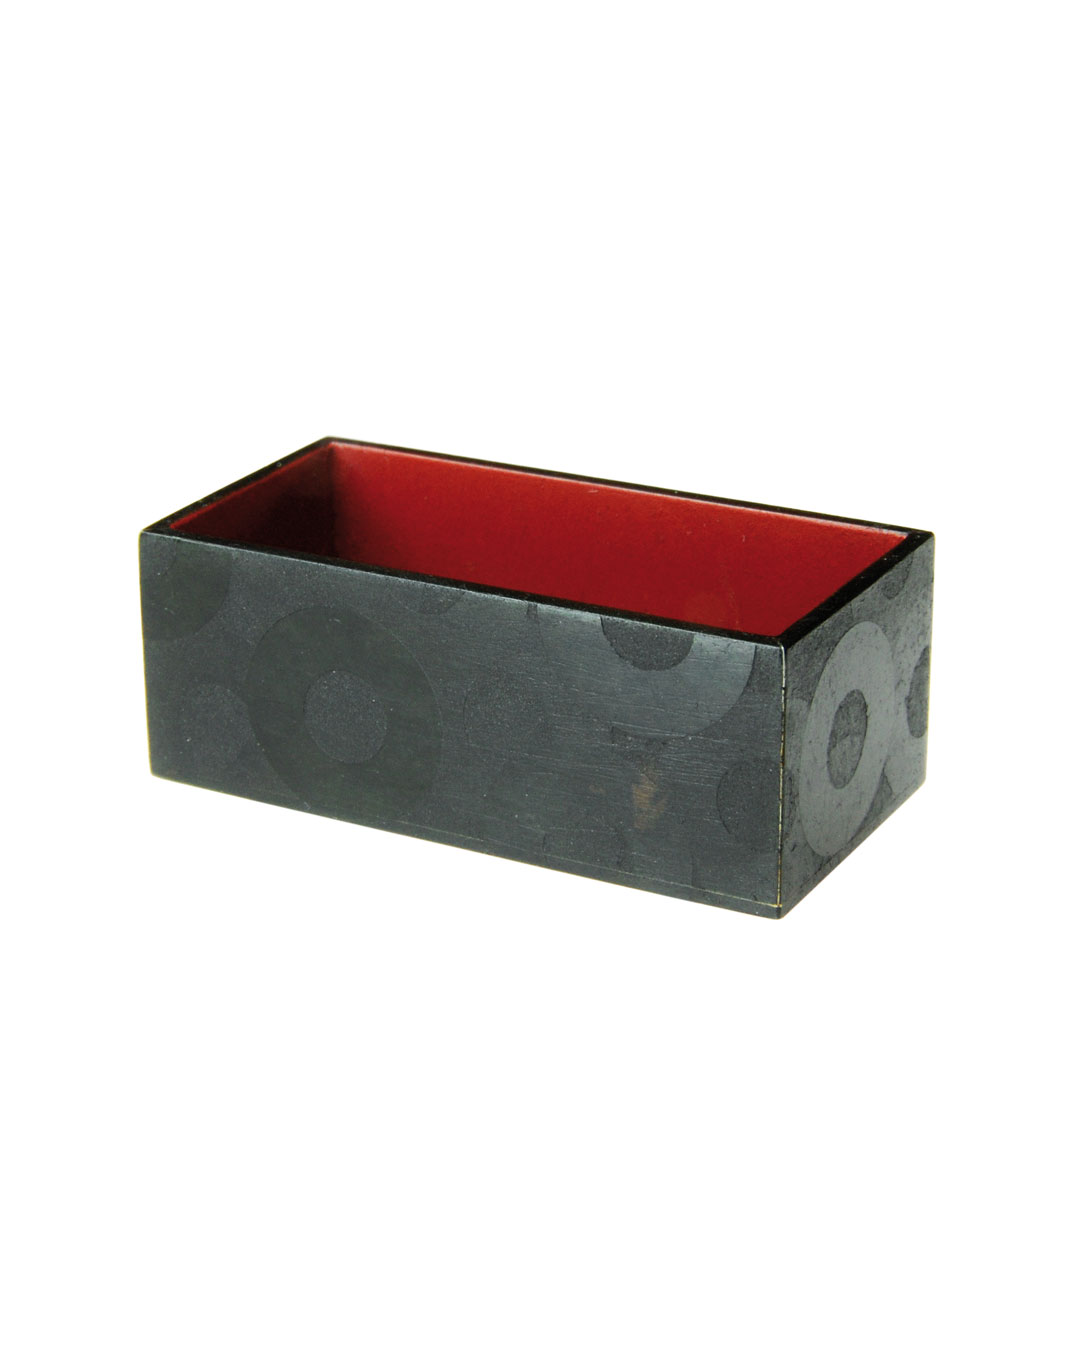 Tore Svensson, Box, 2009, brooch; etched and painted steel, 40 x 20 x 15 mm, €485